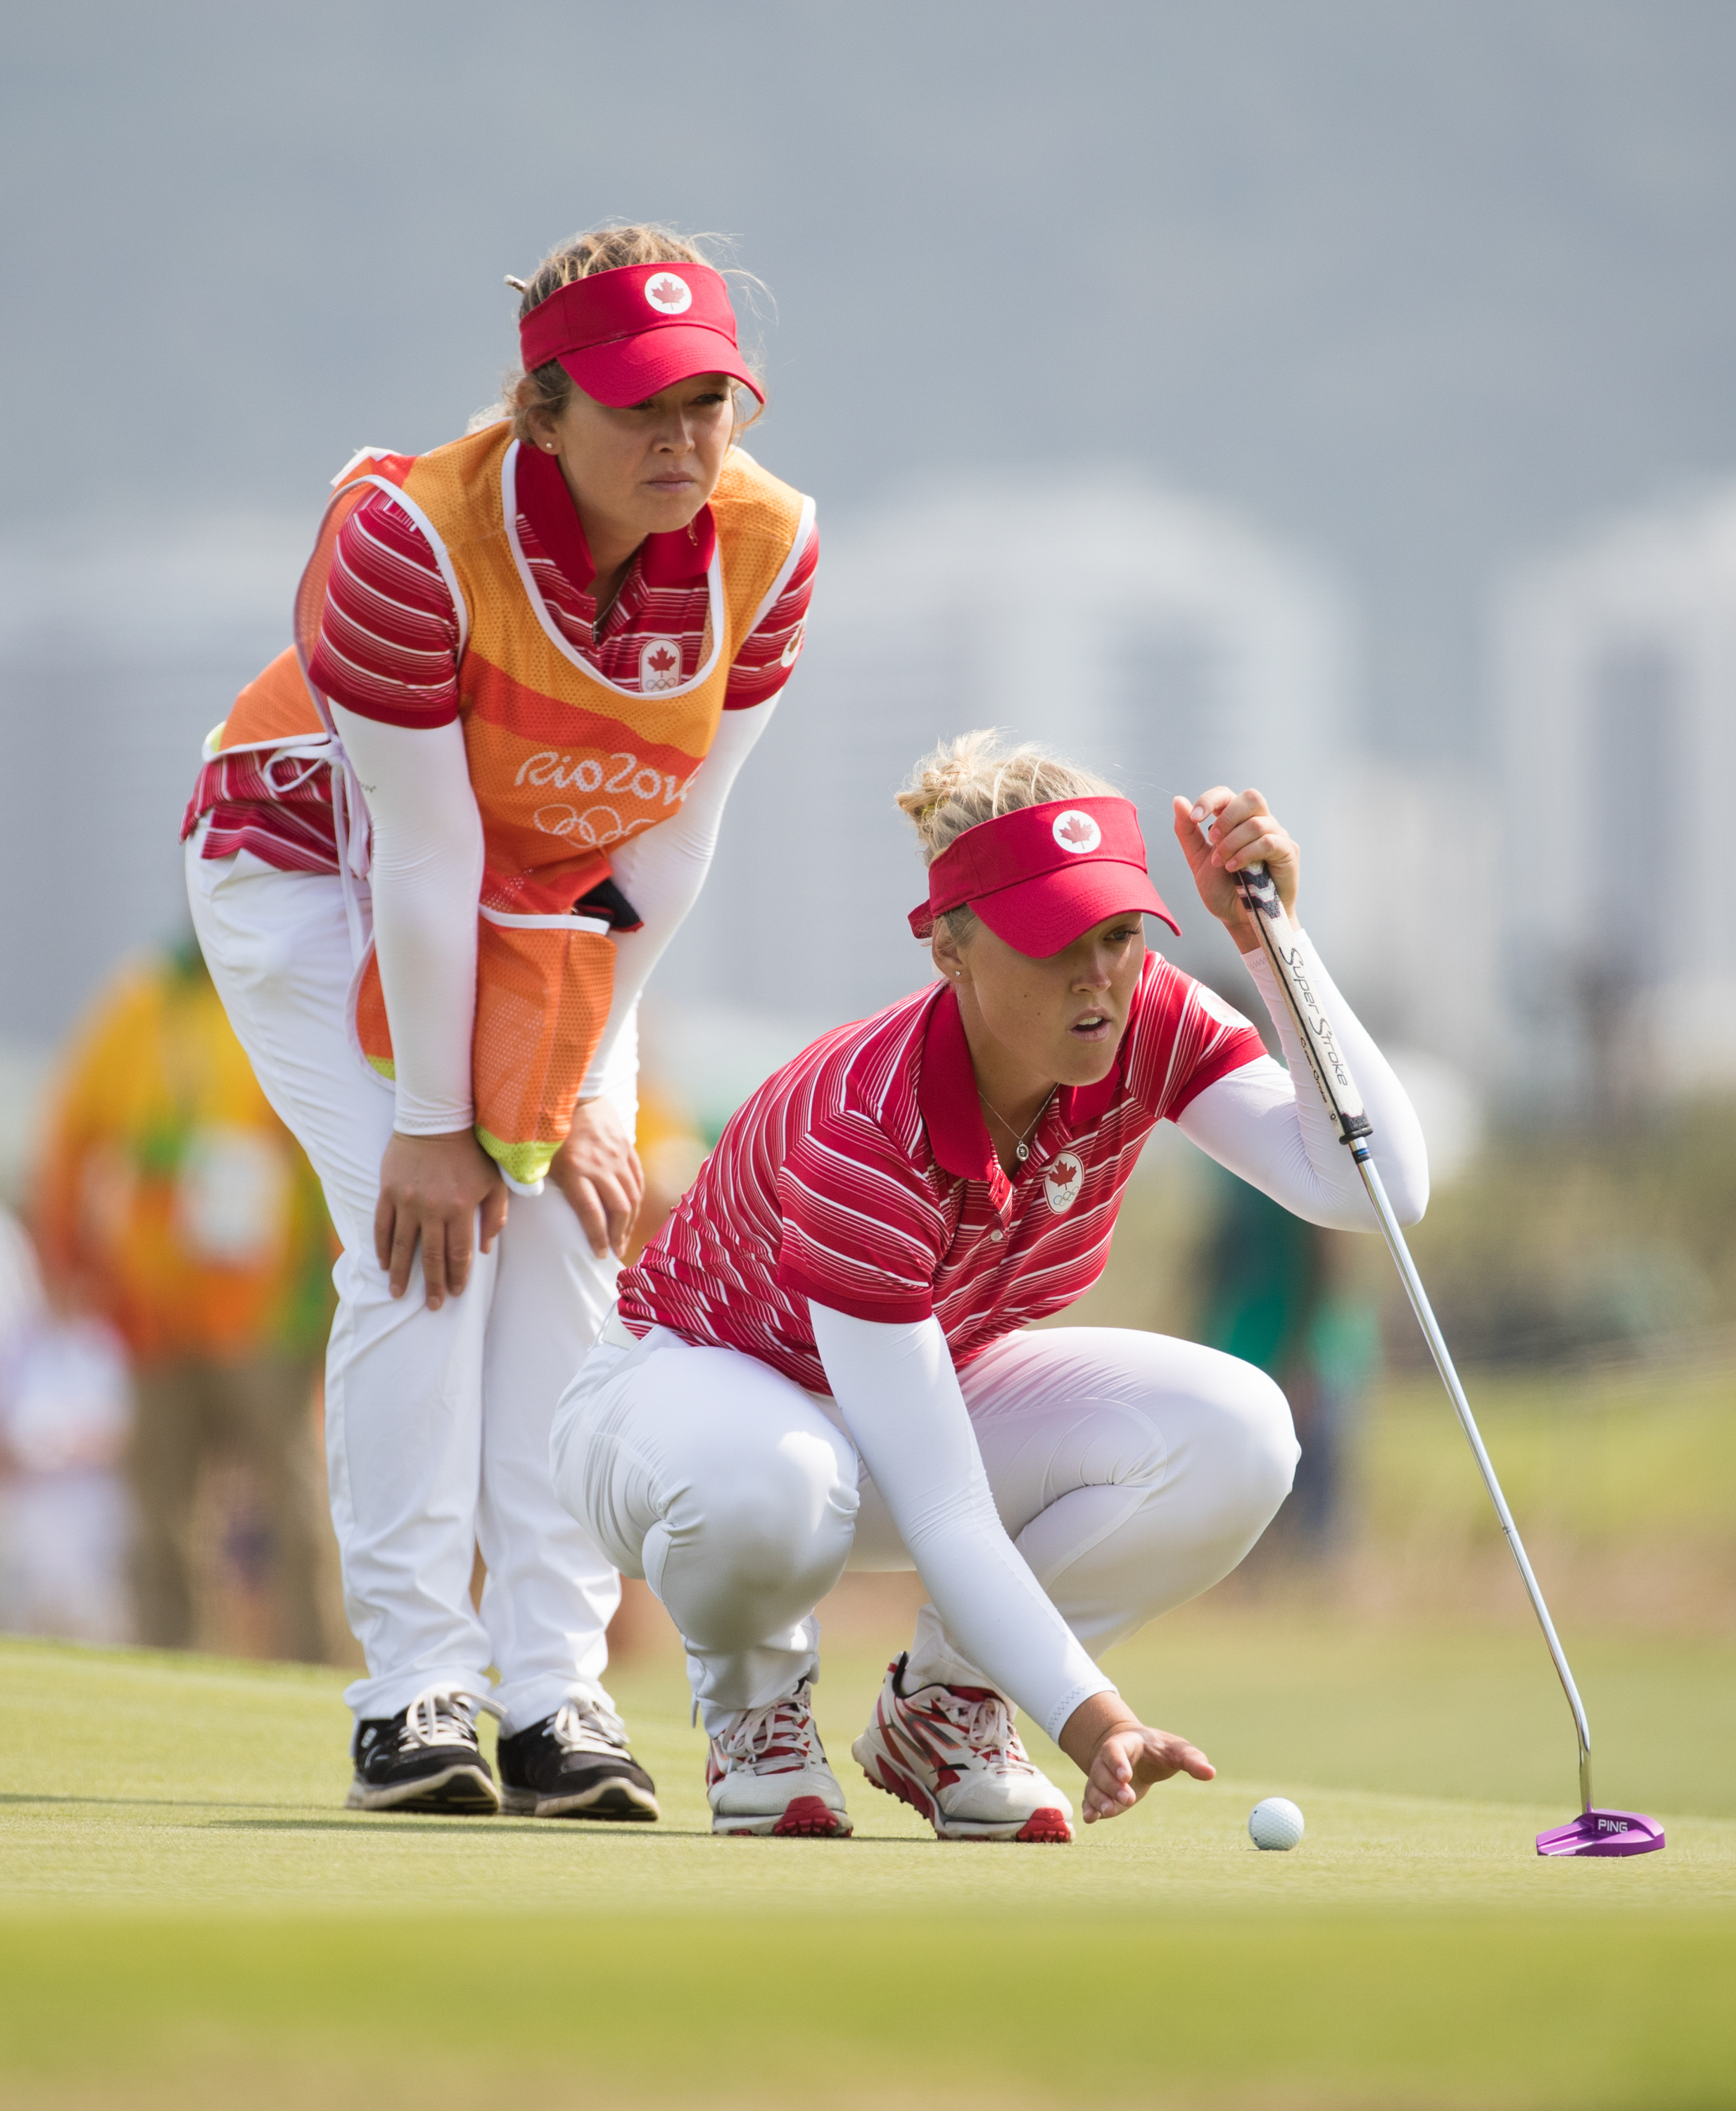 Brooke Henderson competes at Rio 2016